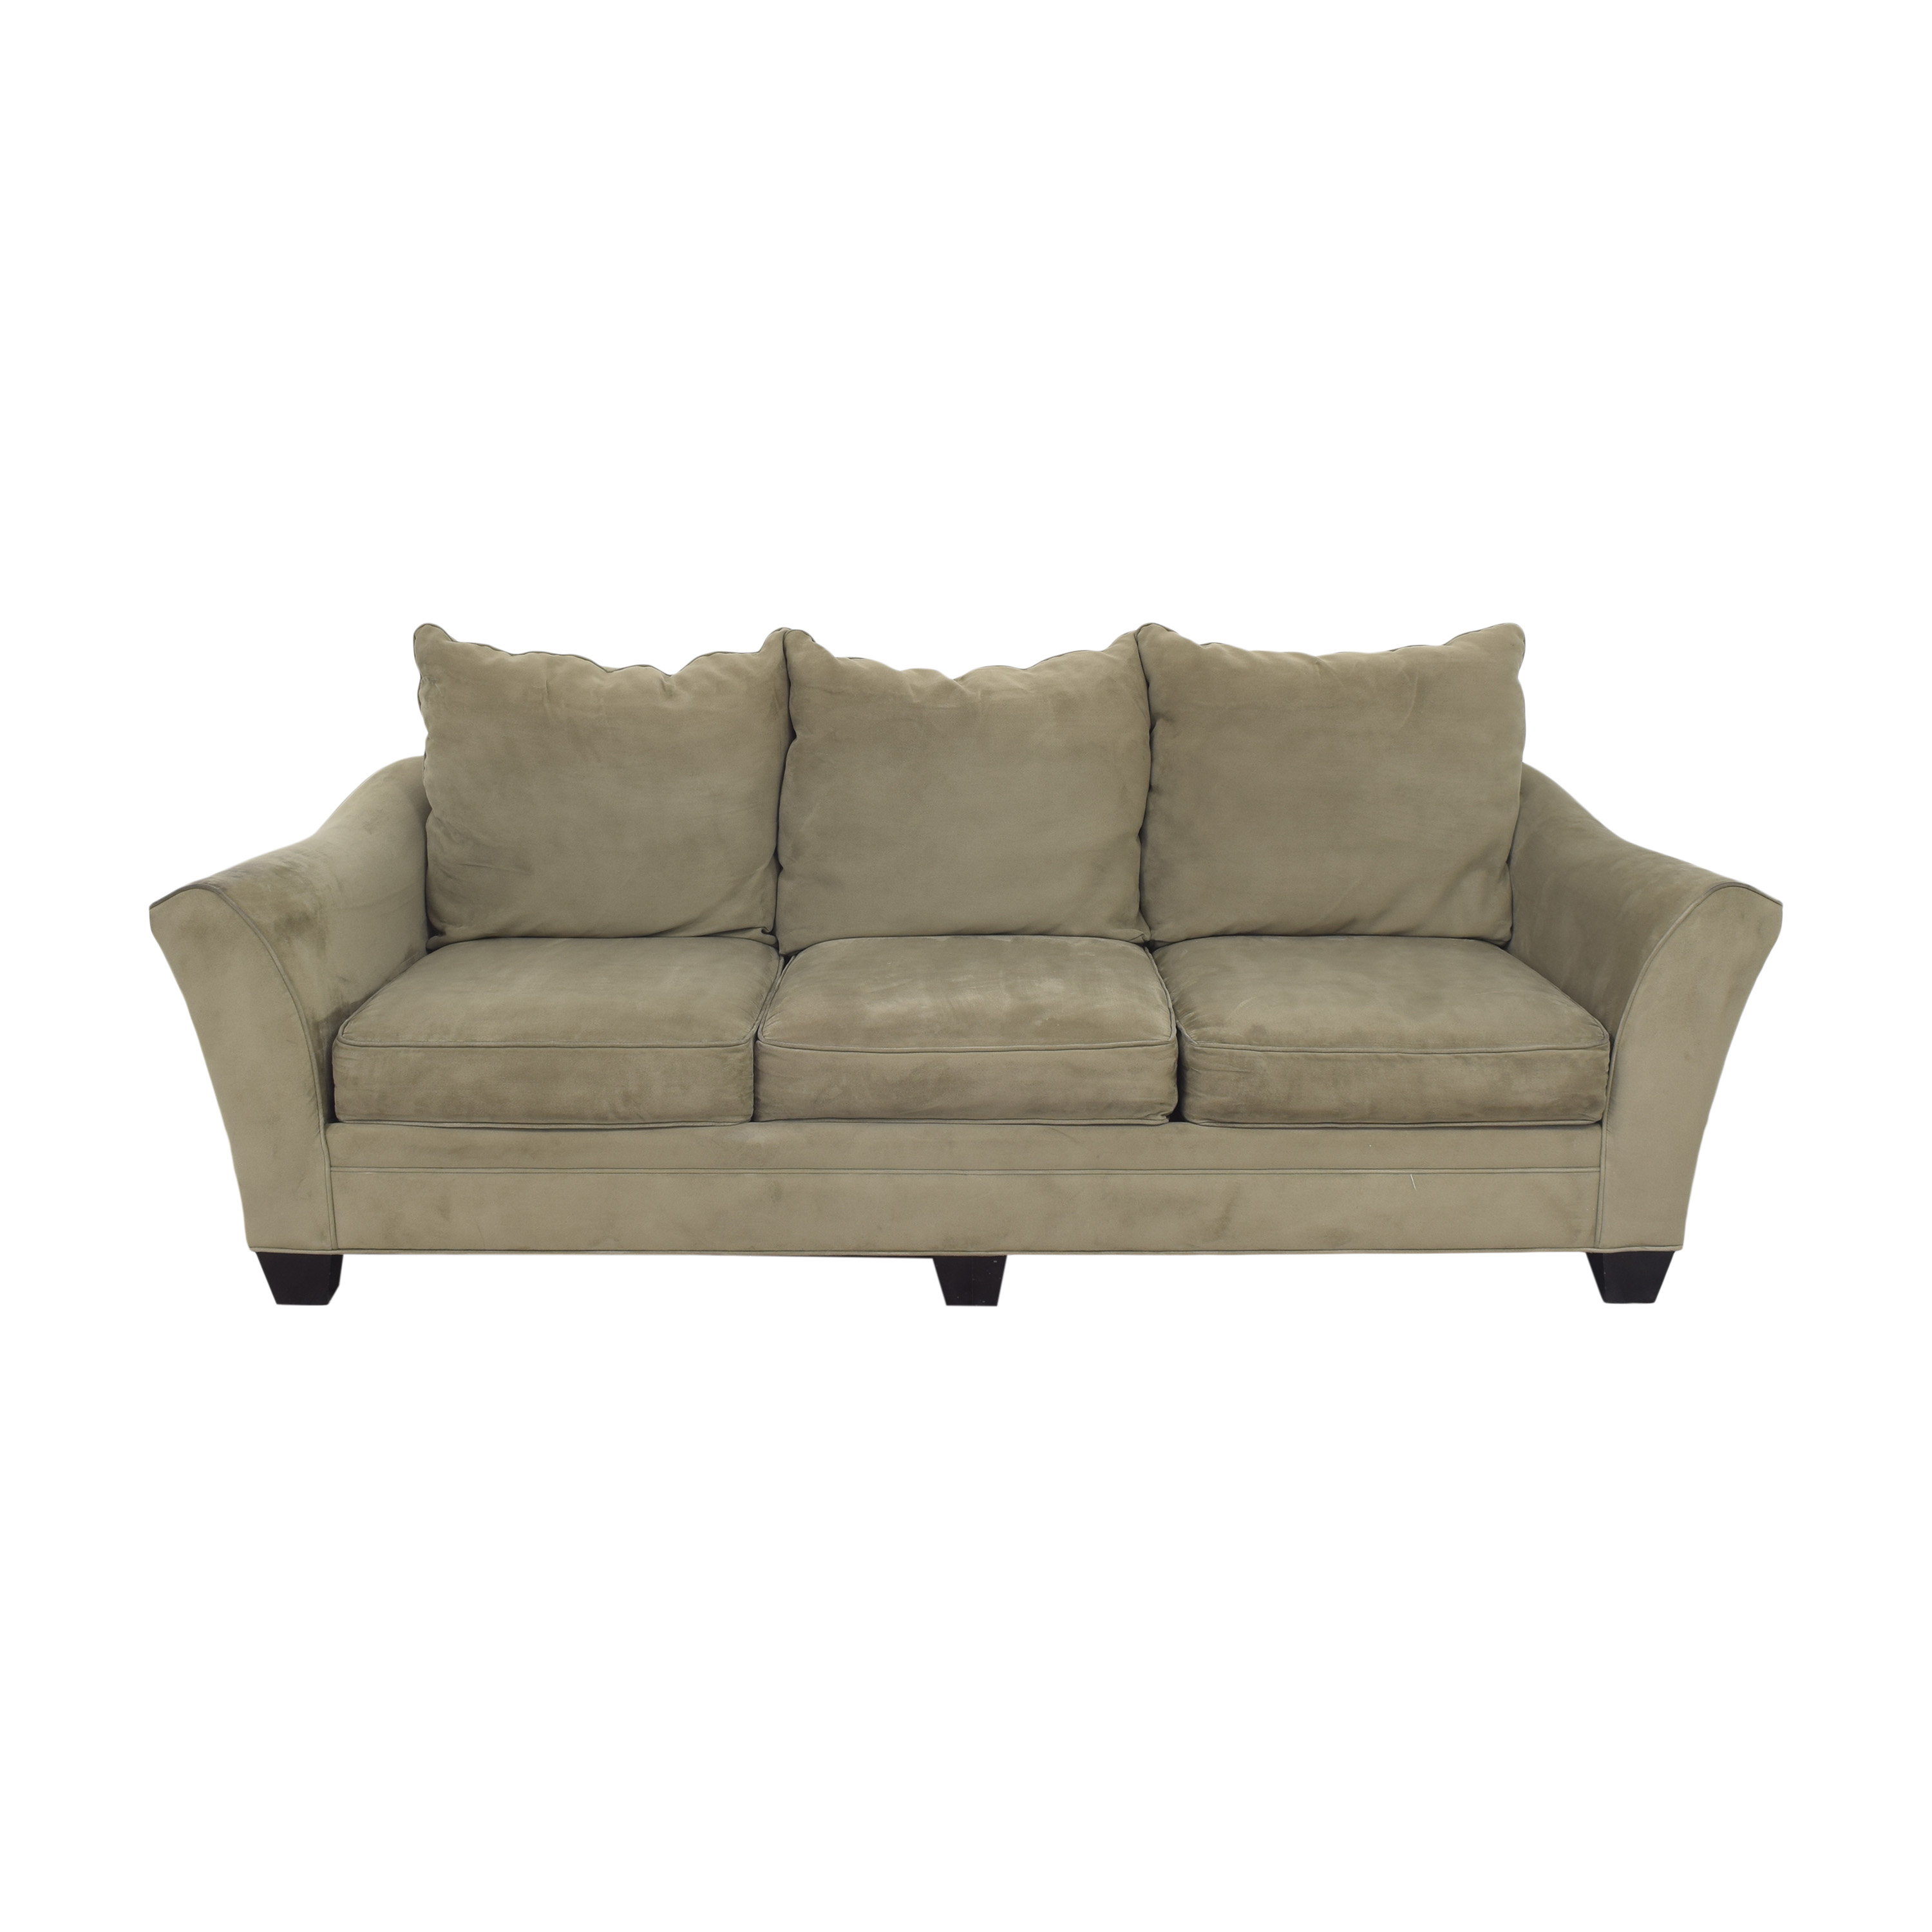 Raymour & Flanigan Raymour & Flanigan Three Cushion Sofa coupon